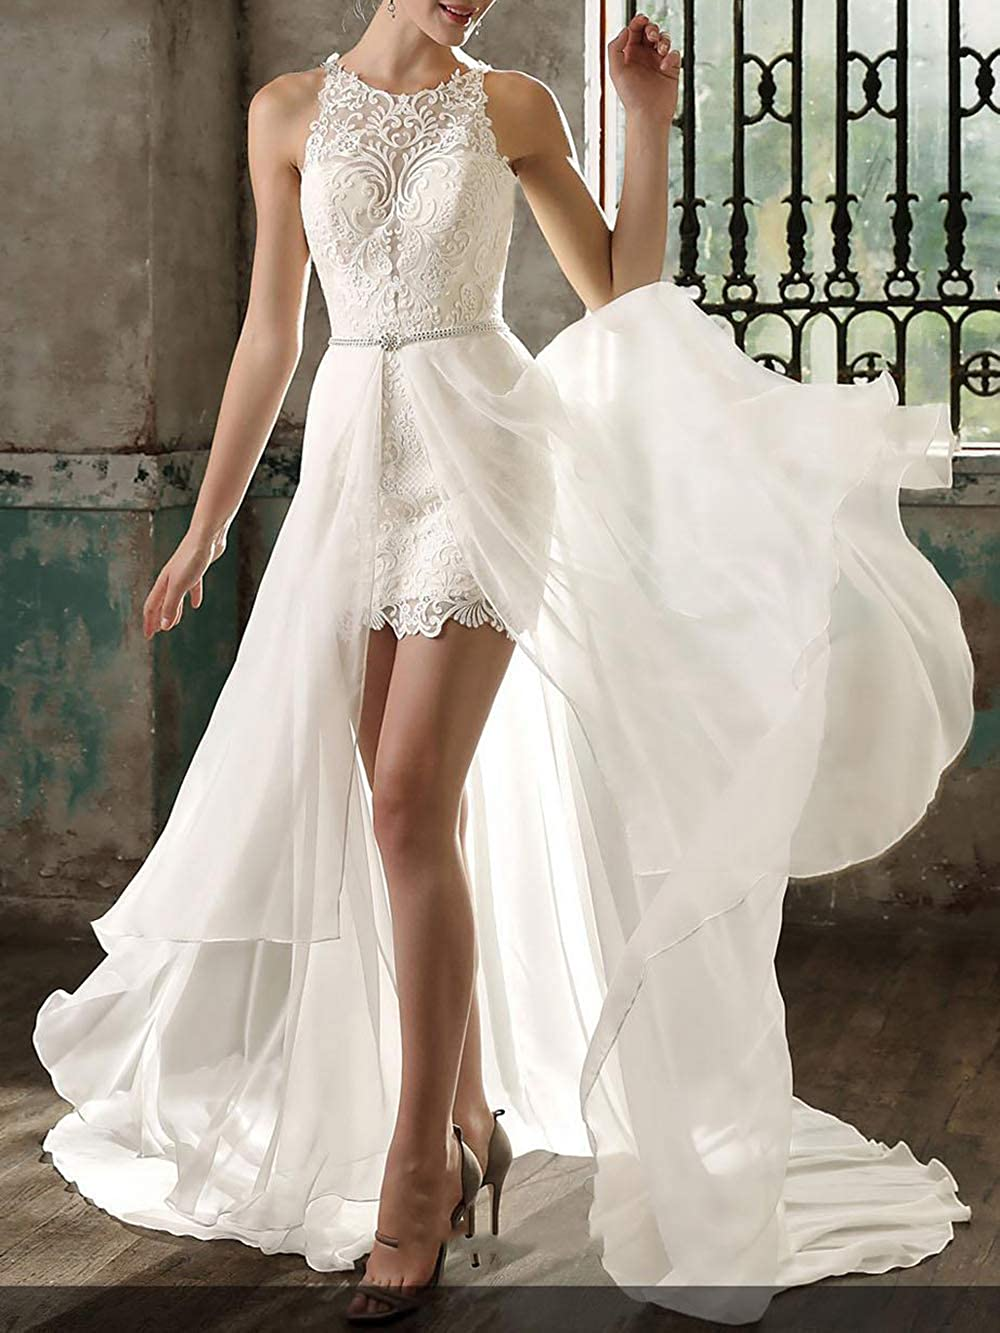 Lovely Romana Womens Sleeveless Lace Appliqued Short Bridal Gown Wedding Dress for Brides with Detachable Train